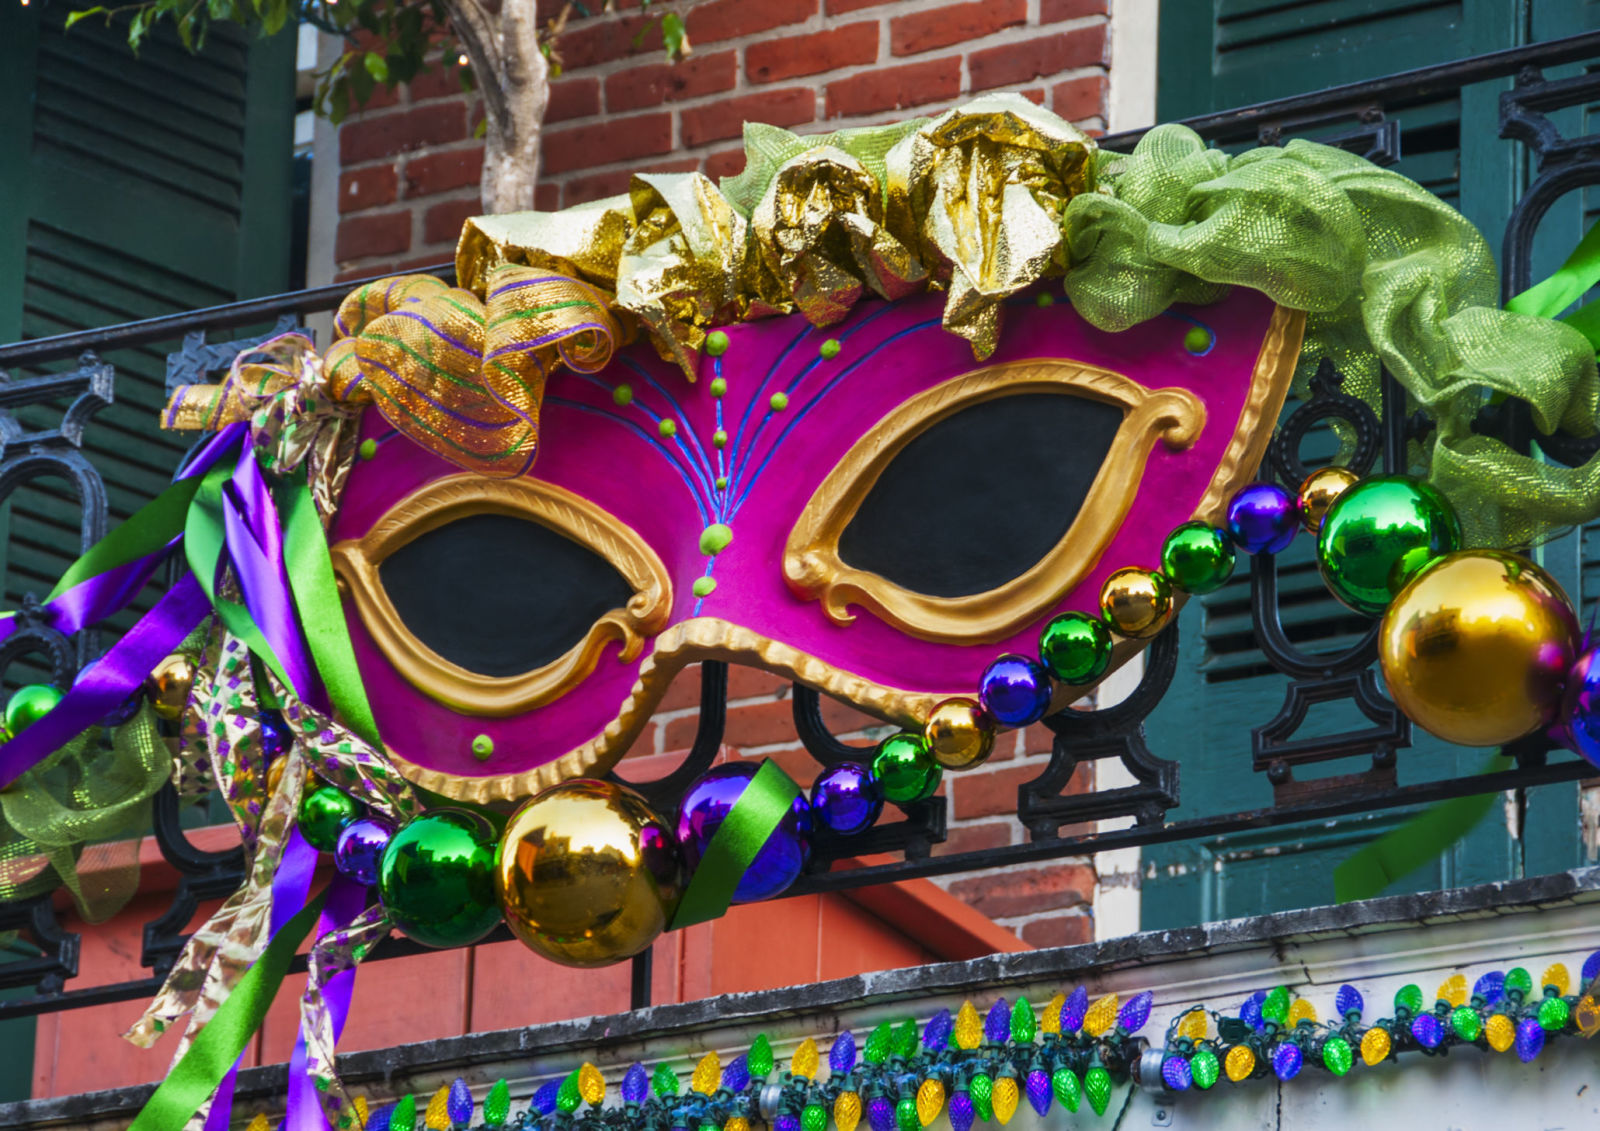 Uncategorized Mardi Gras Information For Kids mardi gras trivia fun facts about gras